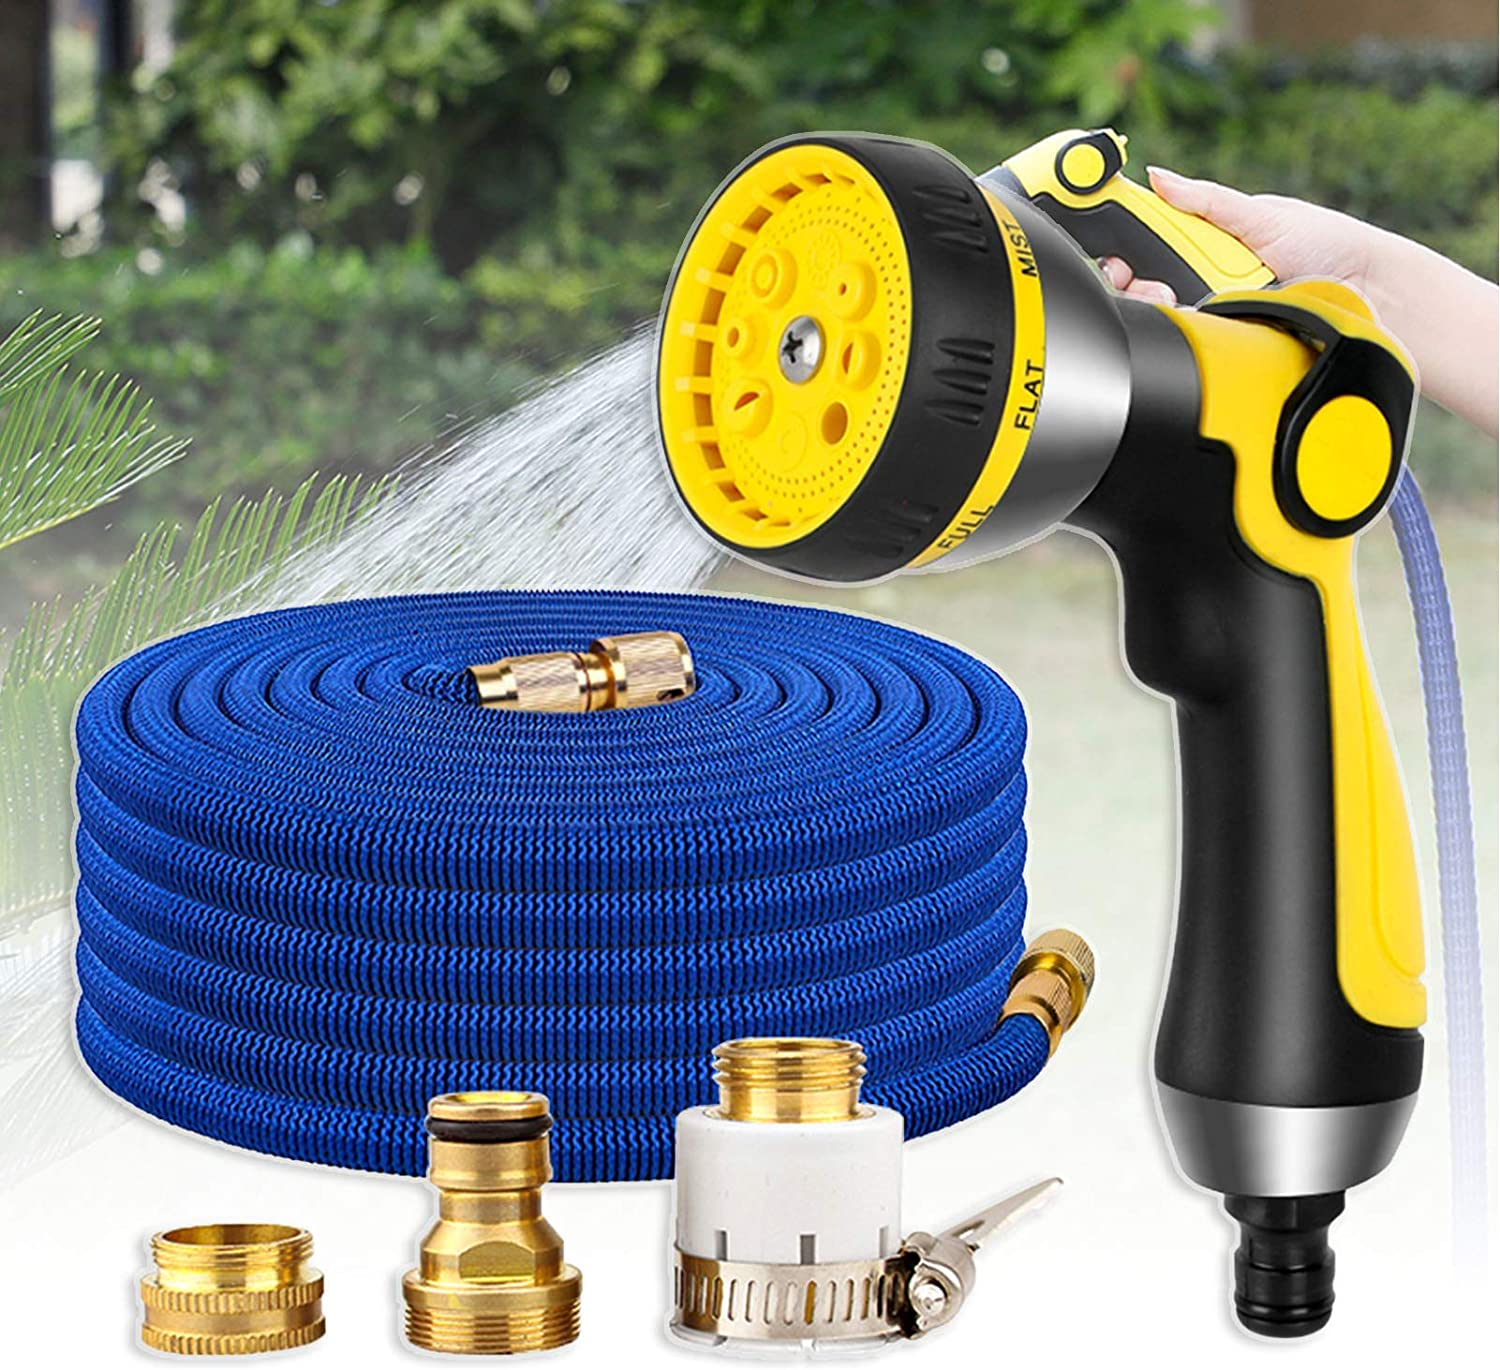 Furren Garden Hose Tools Spasm Easy-to-use price Bseack Set with Mode Retractable 8